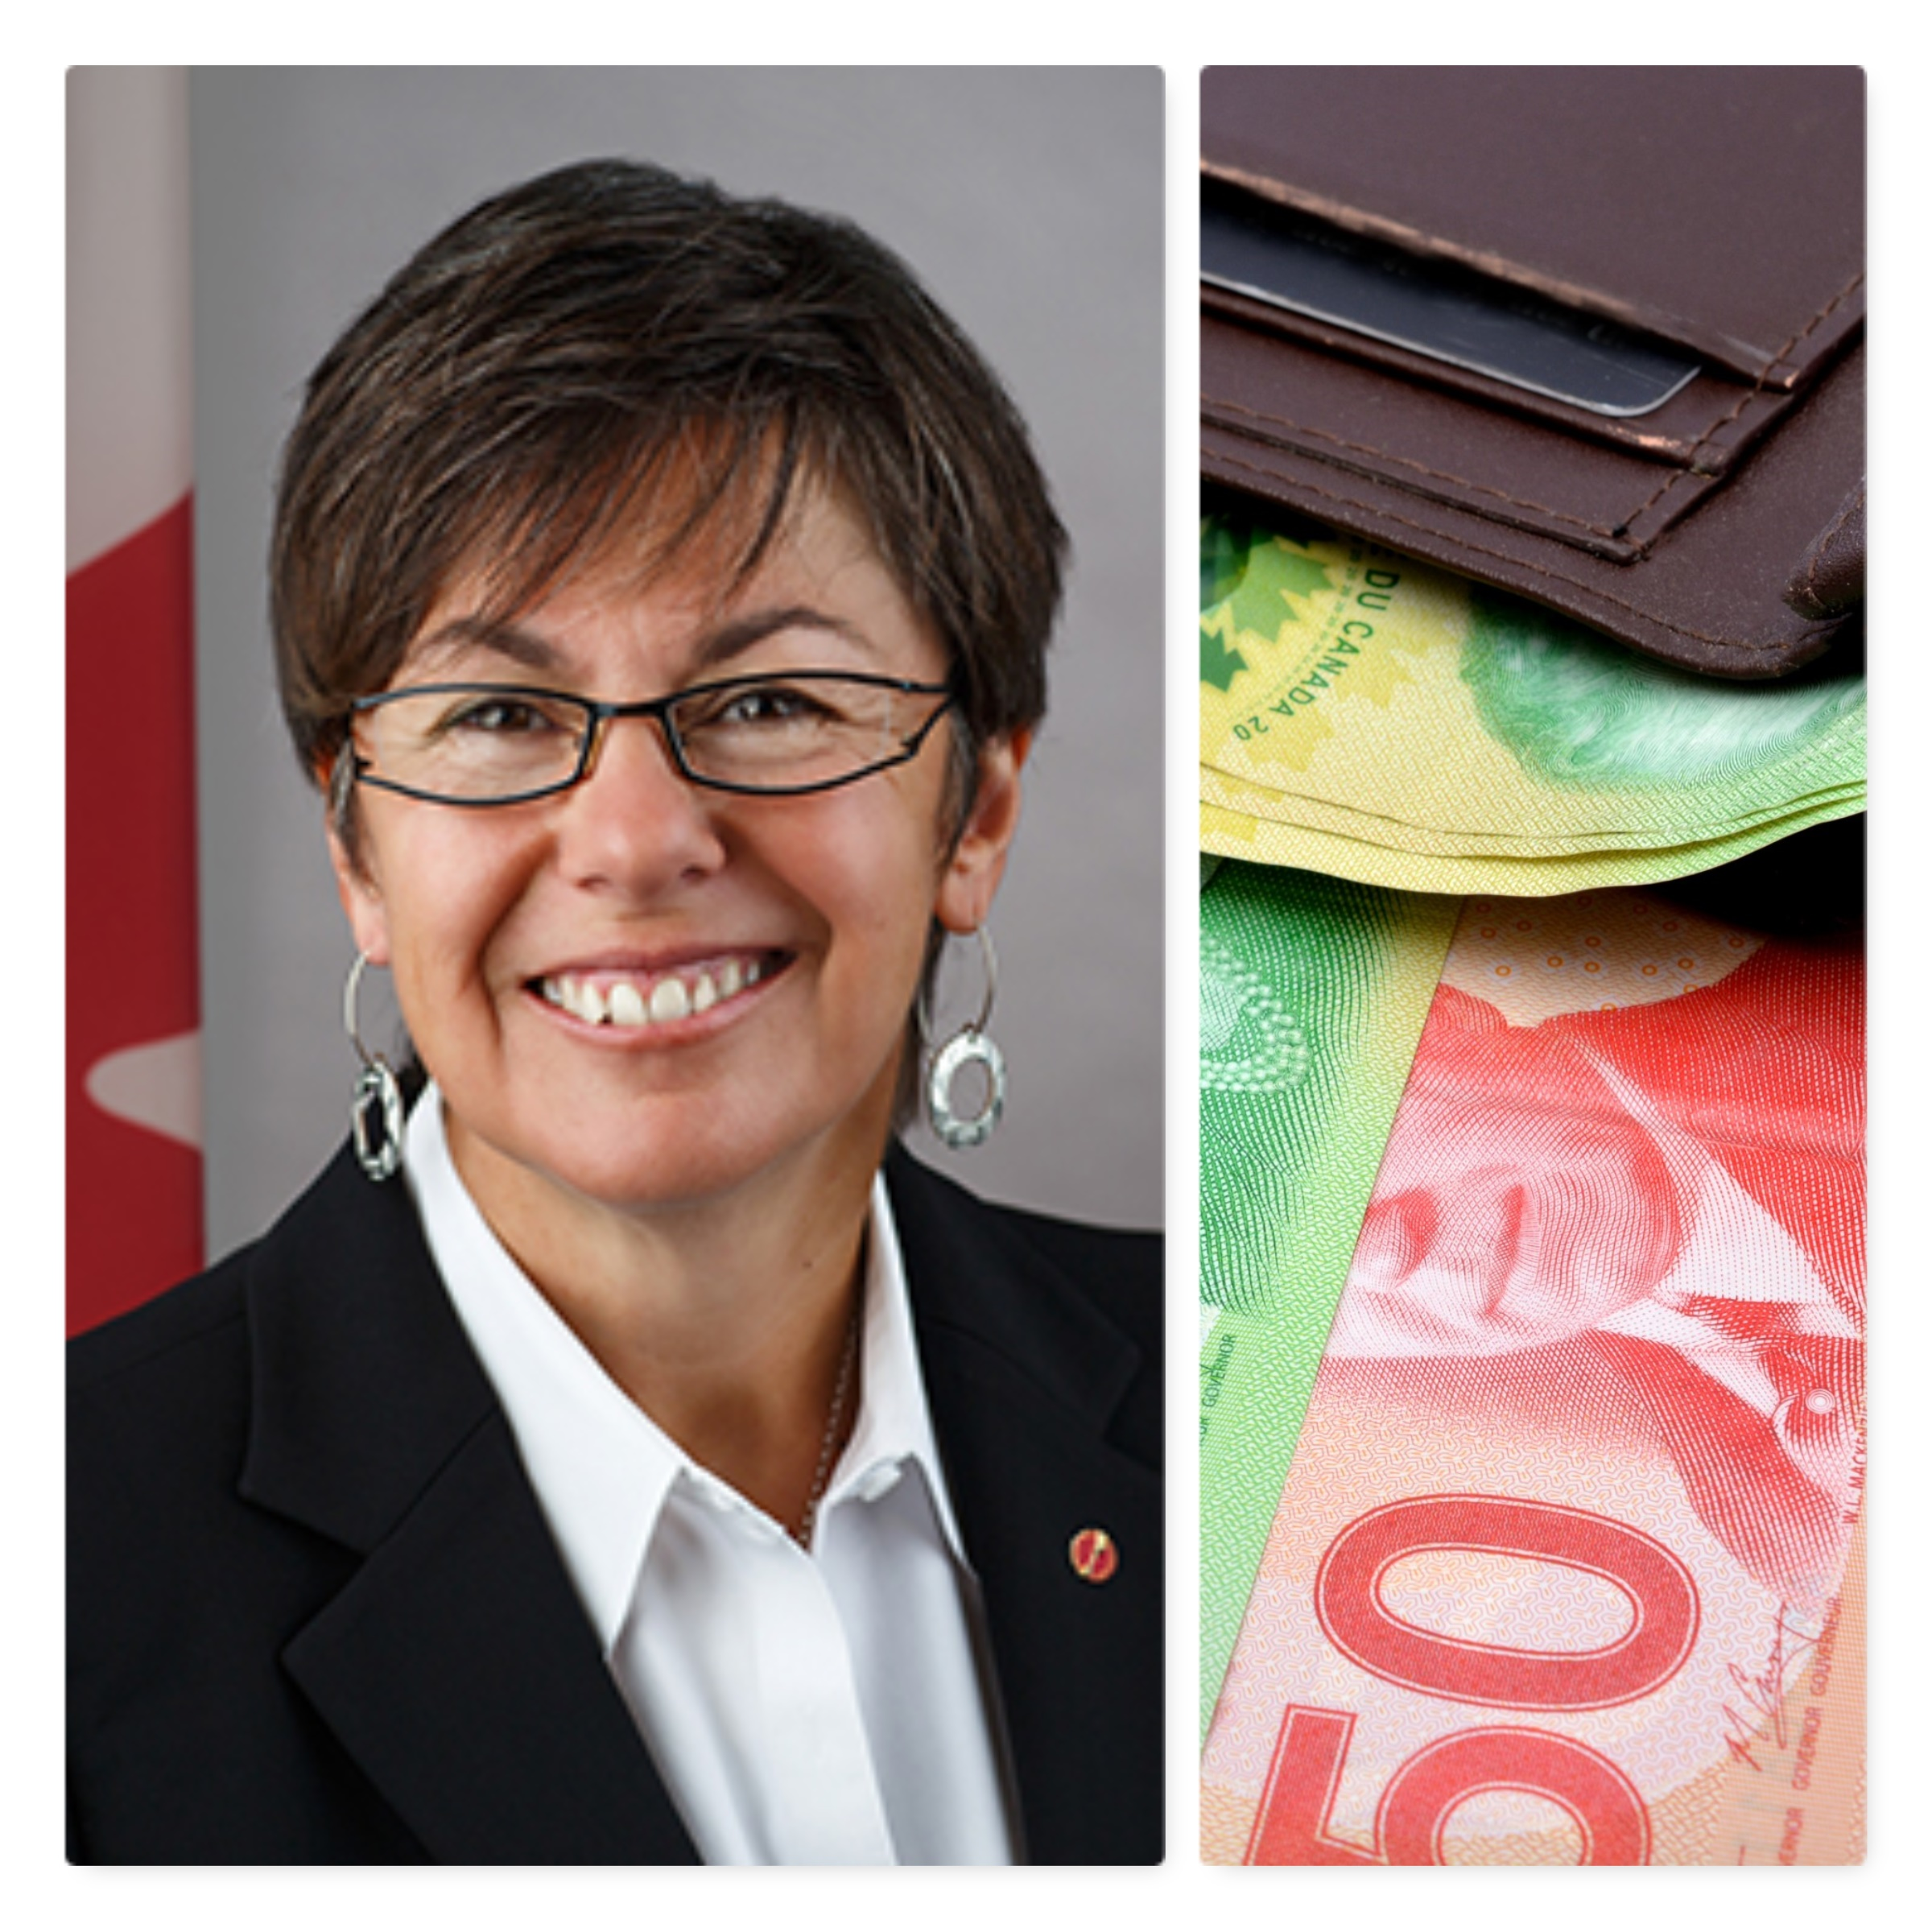 Senator Kim Pate urges Senate to take action on basic income